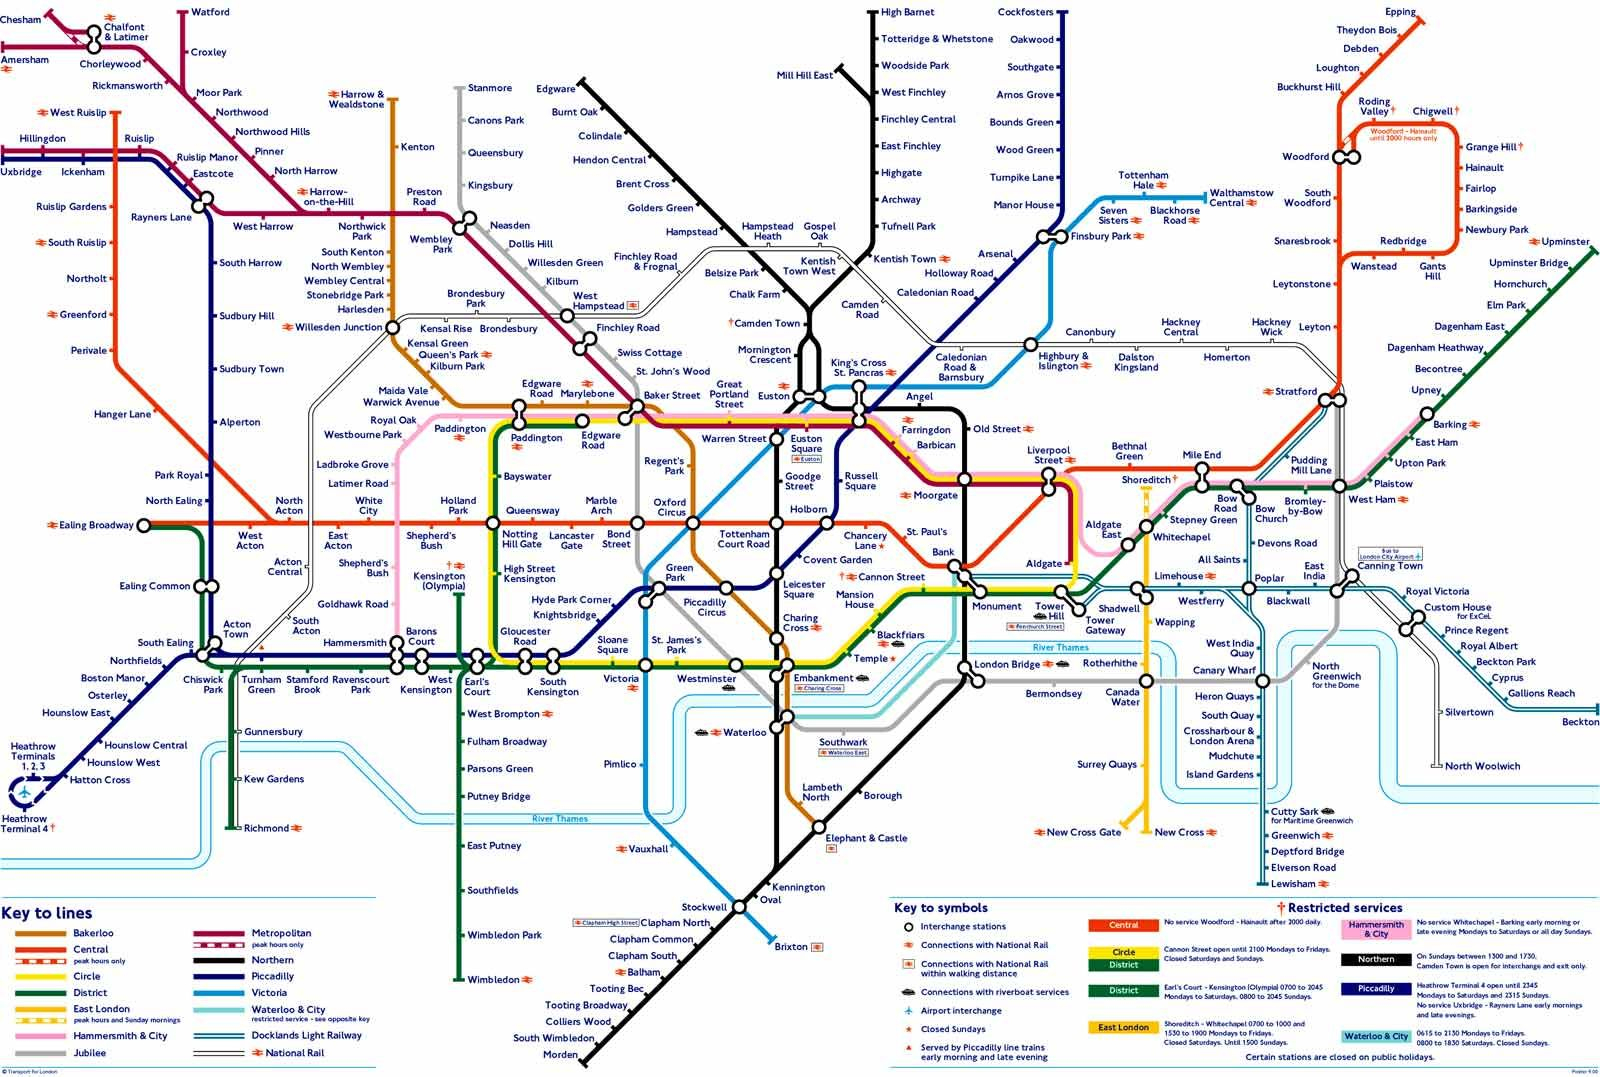 London Mapspost Code Da Printable | Image Ouai J Ai Situe Archay - Printable London Underground Map